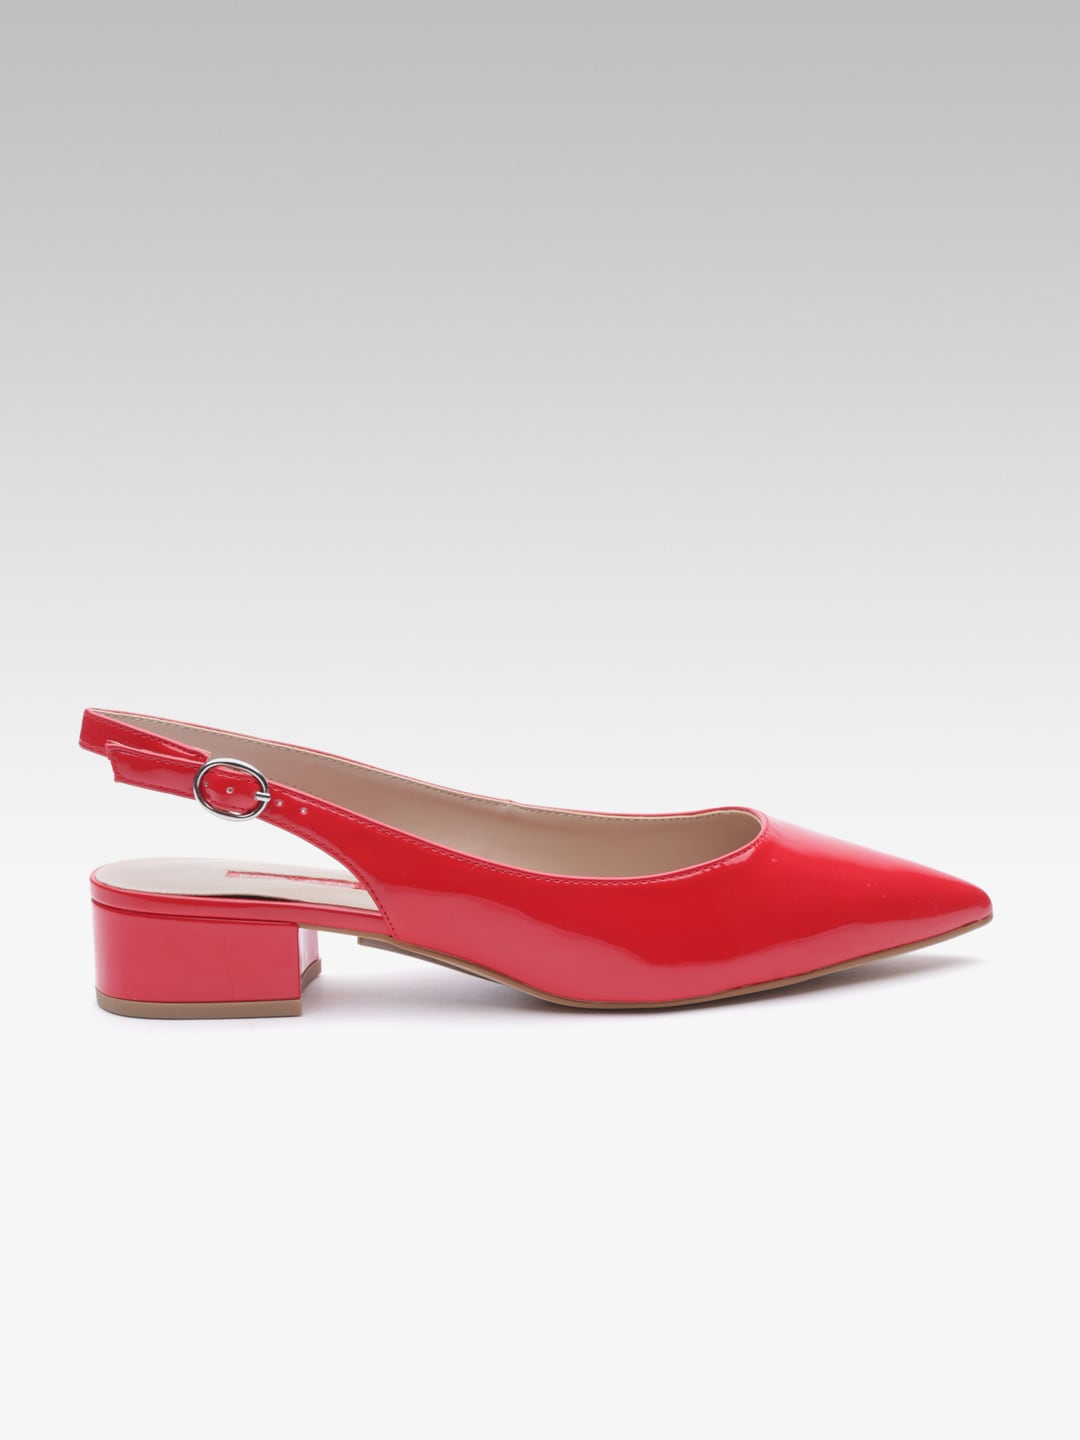 3f1d4d3ed8886 Dorothy Perkins - Buy Dorothy Perkins collection for women online - Myntra